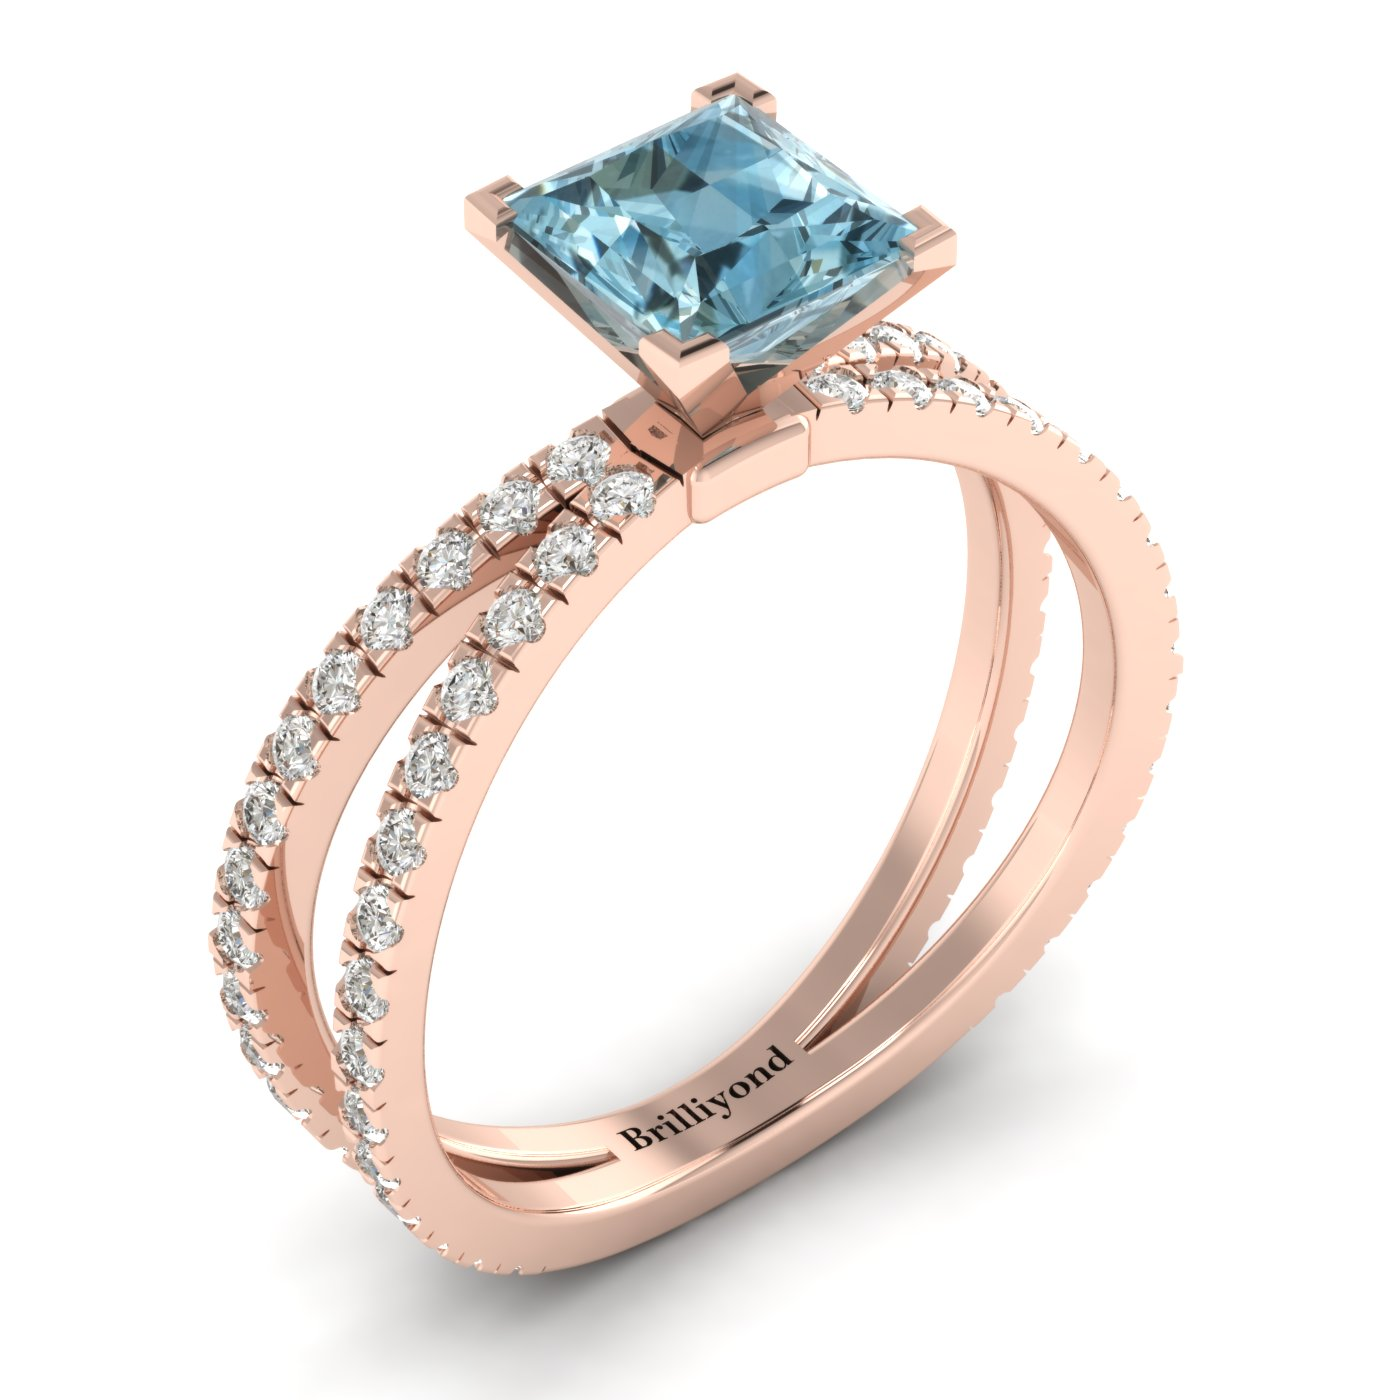 Aquamarine Rose Gold Princess Cut Engagement Ring Florentine_image1